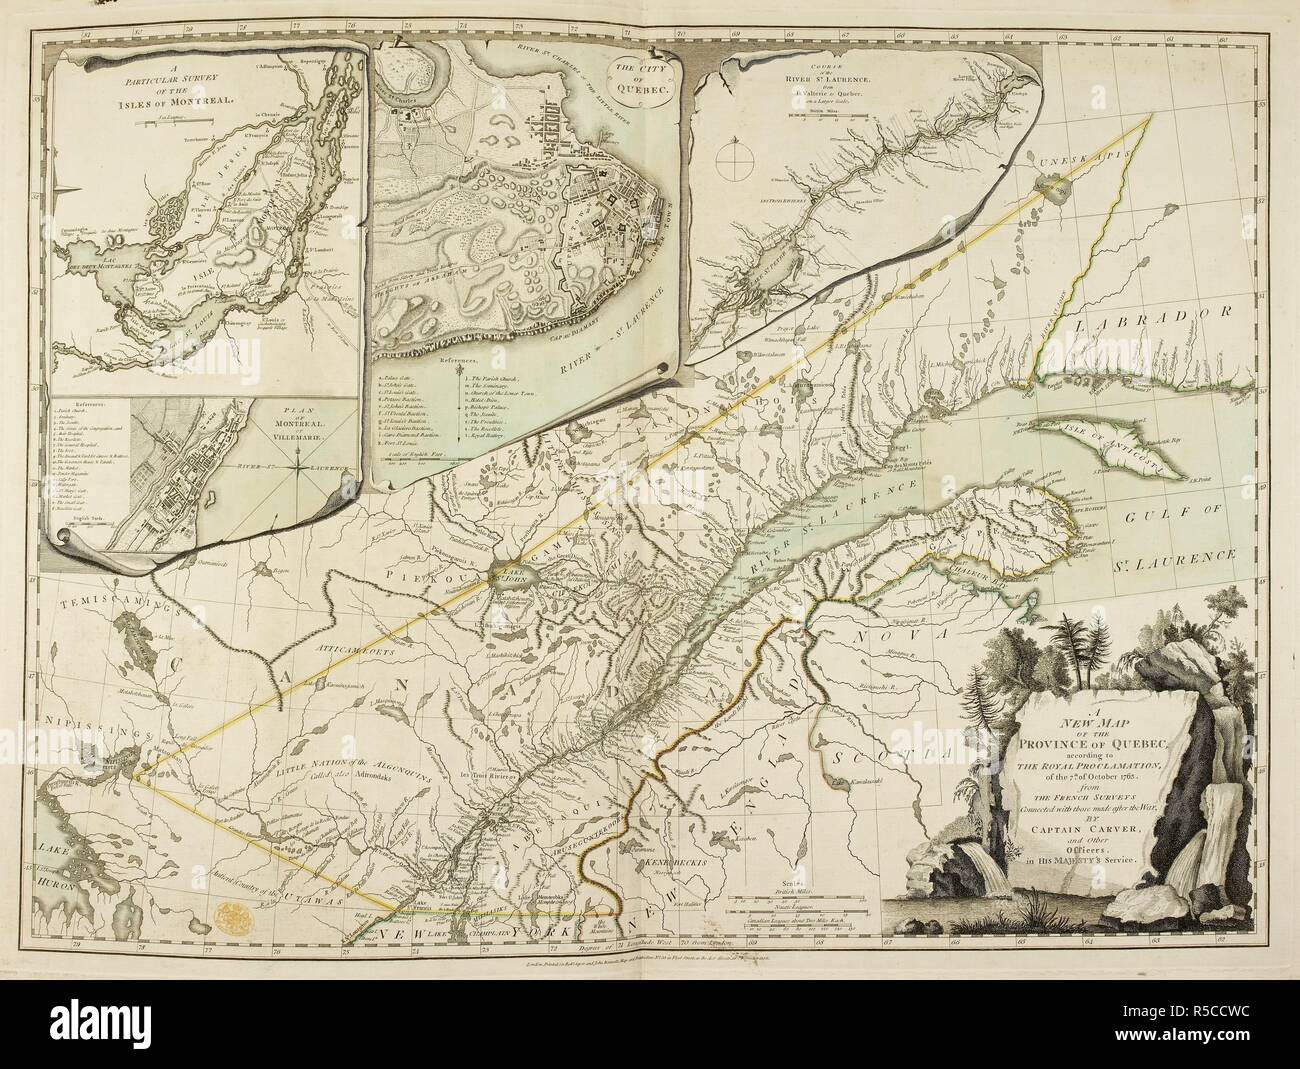 A New Map of the Province of Quebec. A New Map of the Province of Quebec, according to the Royal Proclamation of the 7th October, 1763 ... by Captain Carver and other Officers, etc. 1776. Source: Maps.K.Top.119.19. Language: English. - Stock Image